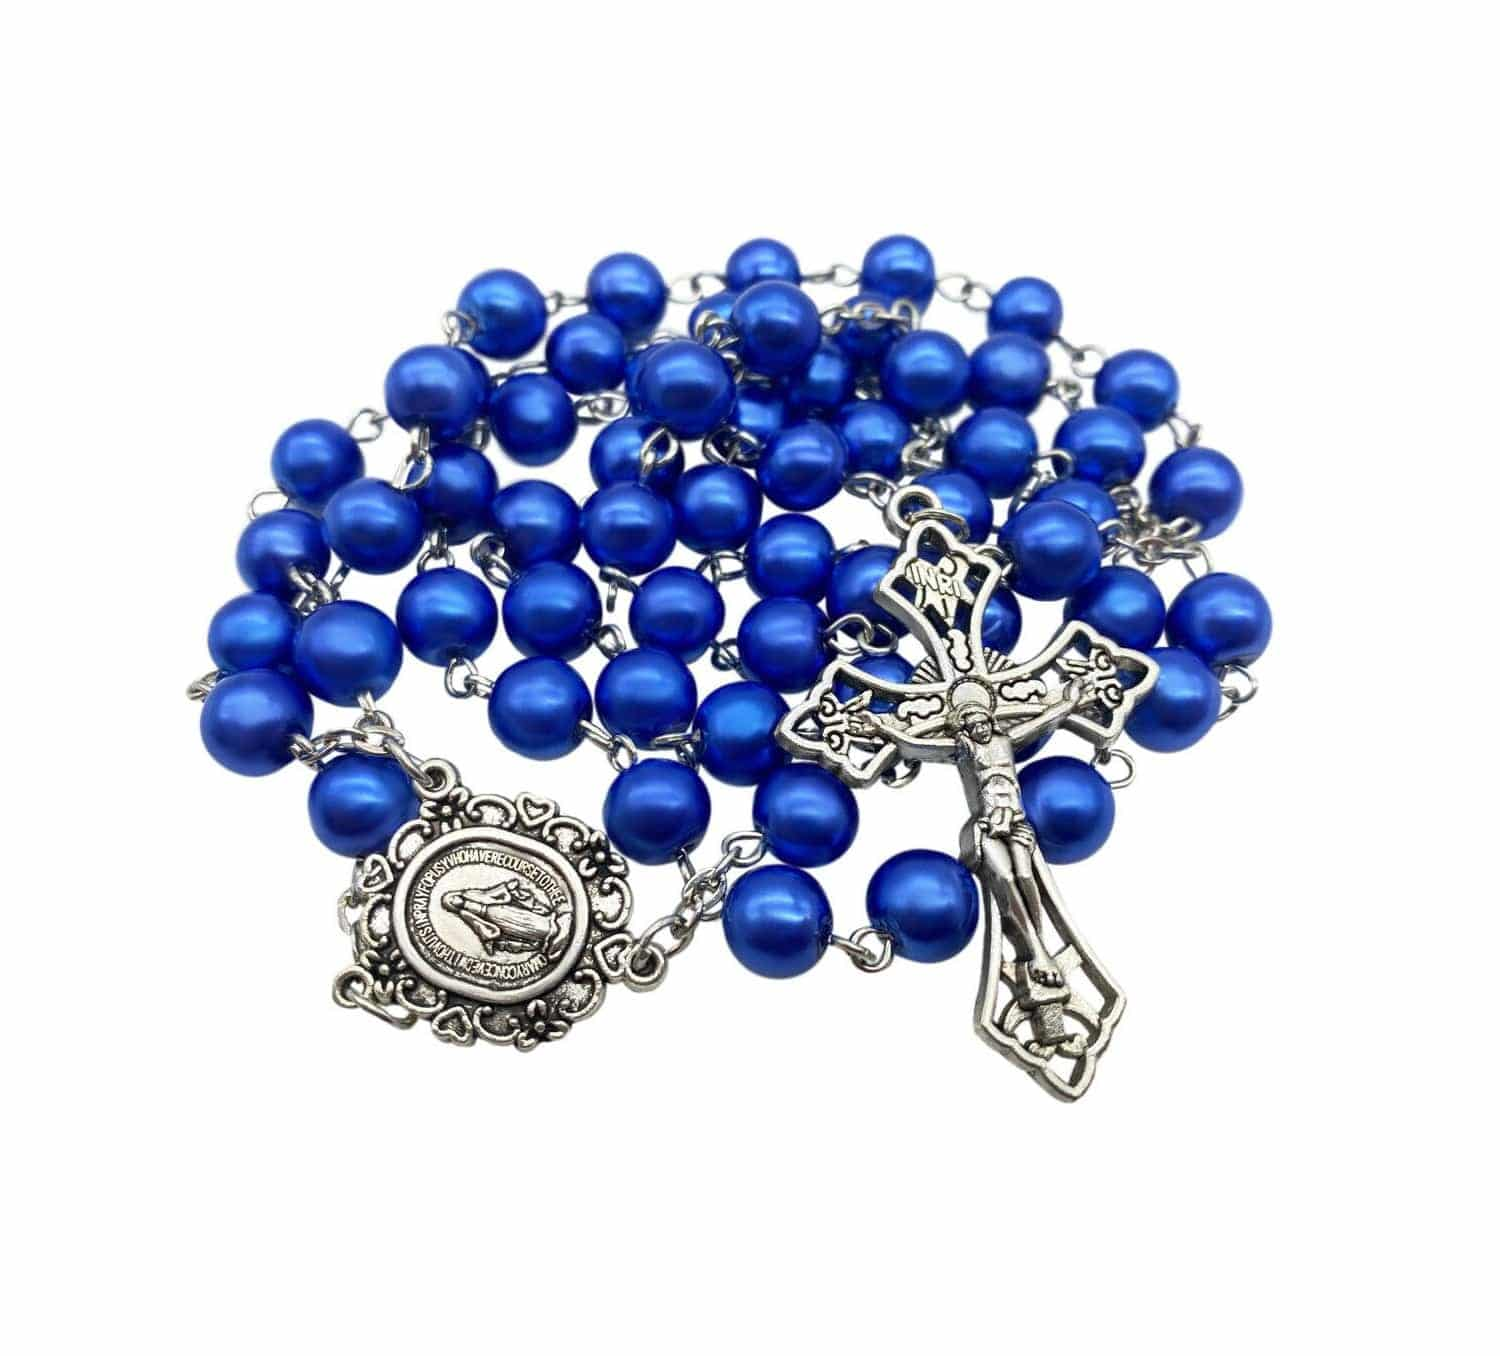 What is The Importance of Gifting Catholic Items?